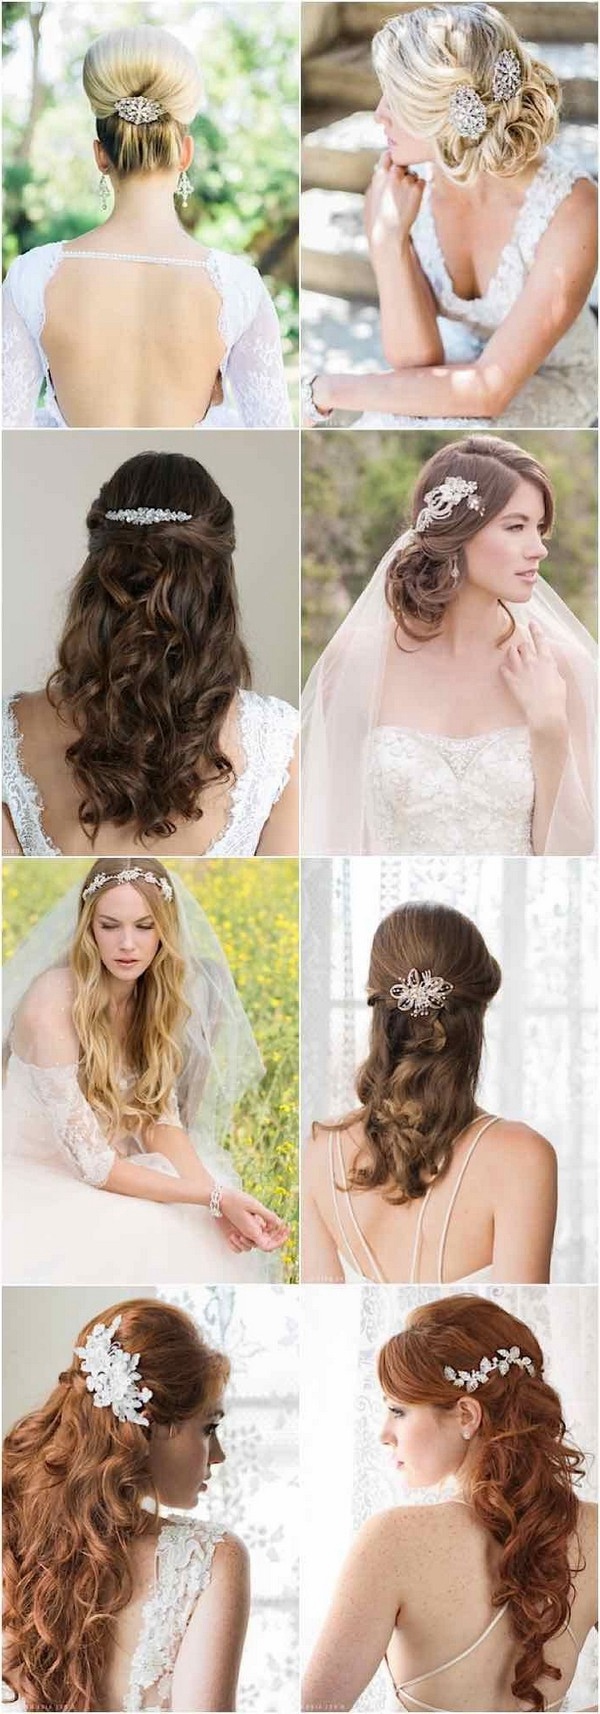 100 romantic long wedding hairstyles 2018 curls half up updos wedding hairstyles with gorgeous accessories from bel aire junglespirit Images